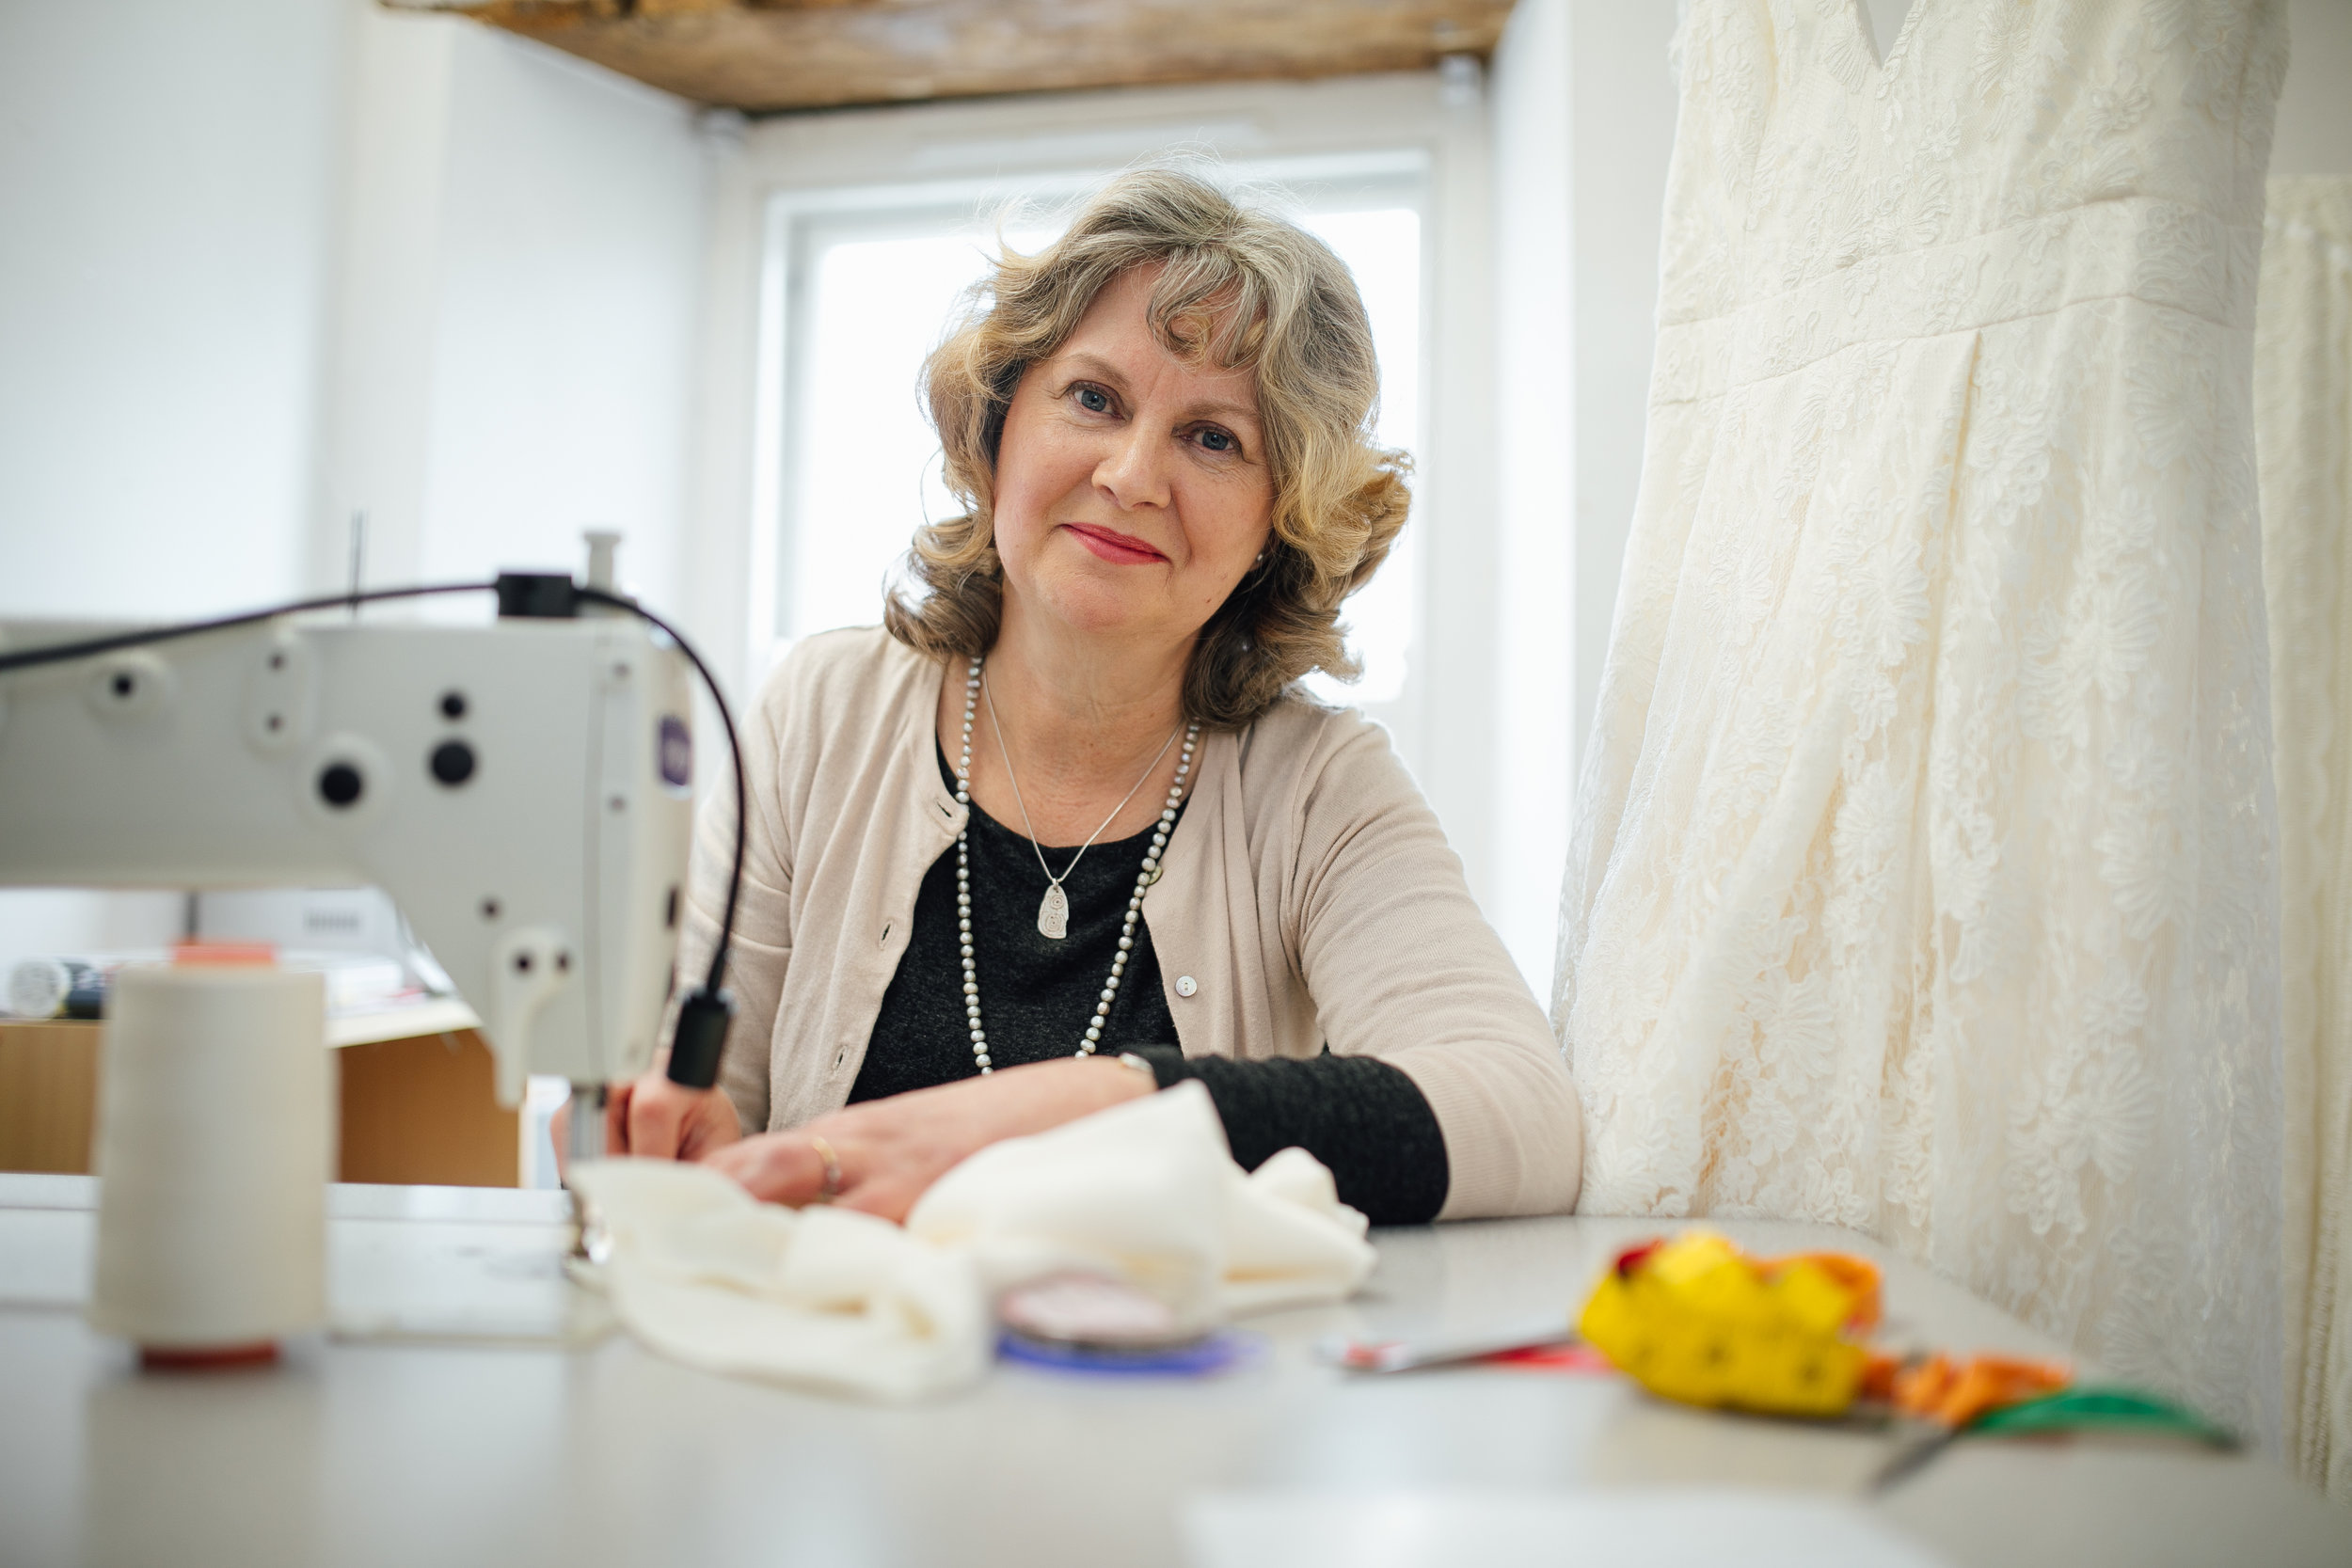 Helen - Helen has been working with Sally for 5 years and is a seamstress genius.Helen studied fashion at The Royal College of Art and has been creating masterpieces ever since, she makes sure every gown fits to perfection in our sewing room at White Bride.